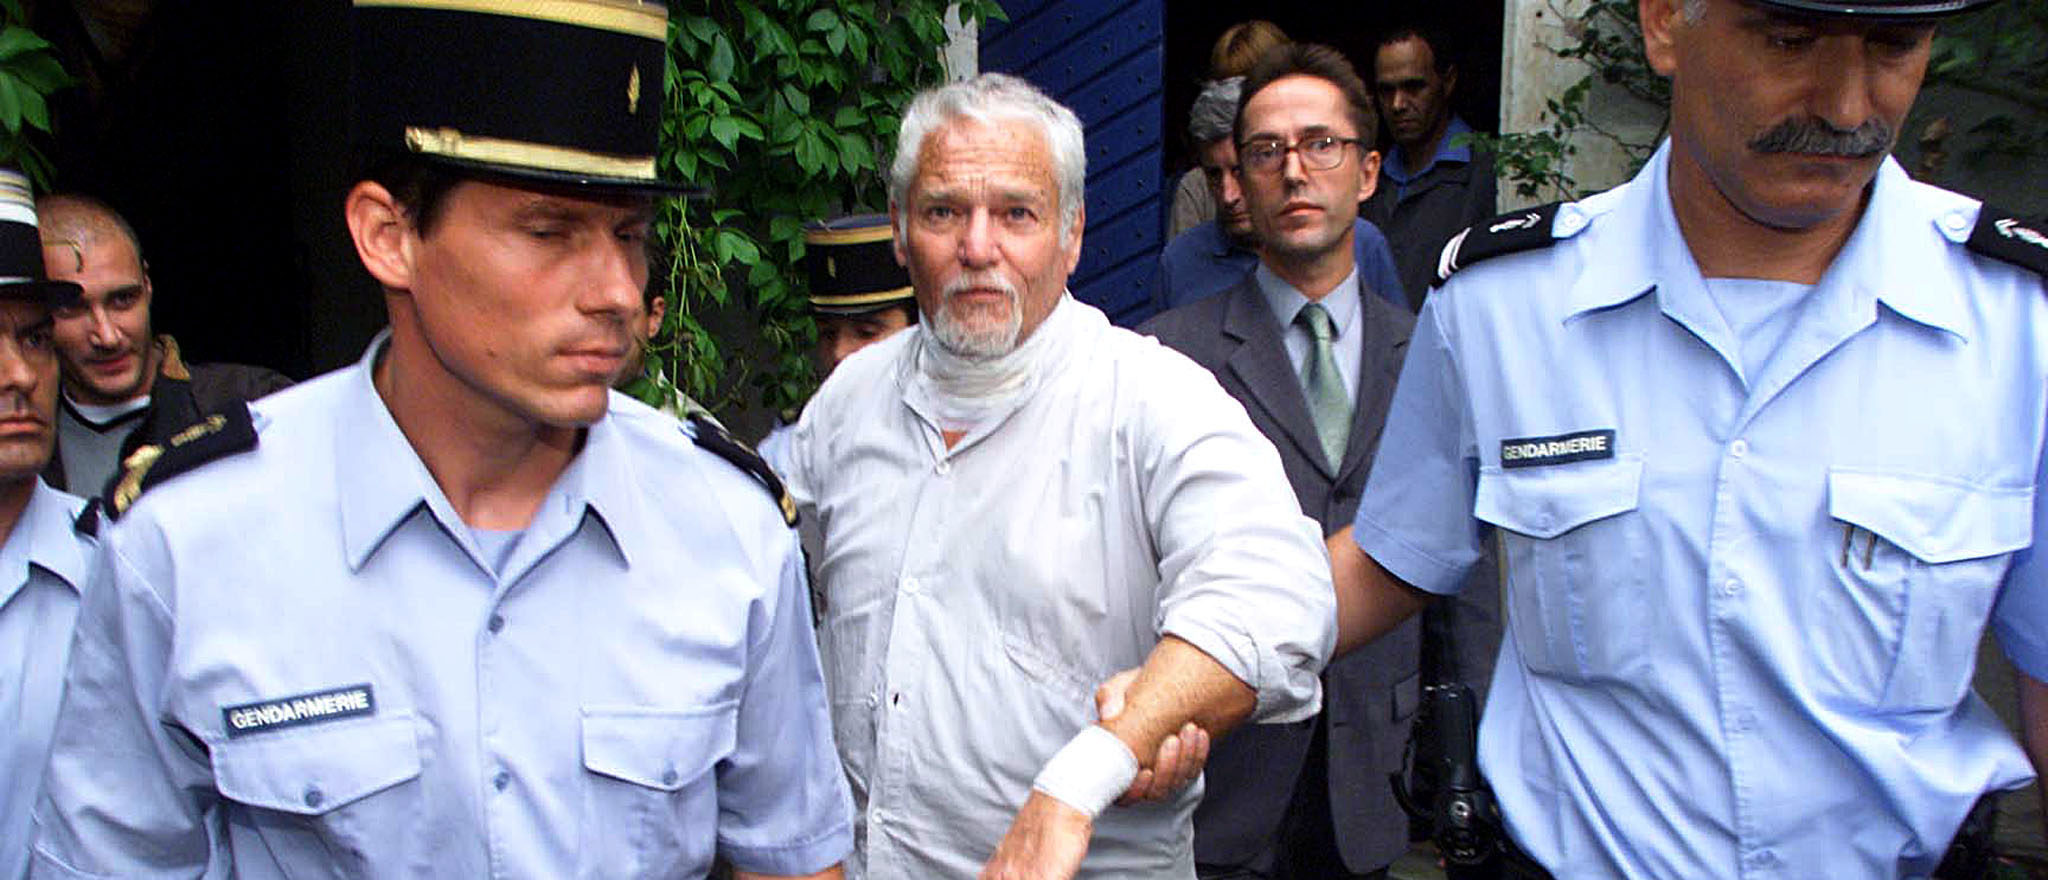 Fugitive former hippie guru Ira Einhorn (C) leaves his home under French gendarme escort in Champagne-Mouton, July 19, 2001, in a possible prelude to his extradition to the United States to face a new trial for the mirder of his girlfriend in 1977. The European Court of Human Rights earlier ruled that Einhorn could be extradited to the USA without further delay to be tried for murder. Einhorn, who slit open his throat in protest last Thursday after losing his final appeal against extradition from France to the U.S. for bludgeoning girlfriend Holly Maddux to death in 1977, promised to go quietly if French police carry out an order to extradite him th the U.S. to stand trial for murder. - Reuters   Earth Day Founder Killed His Girlfriend